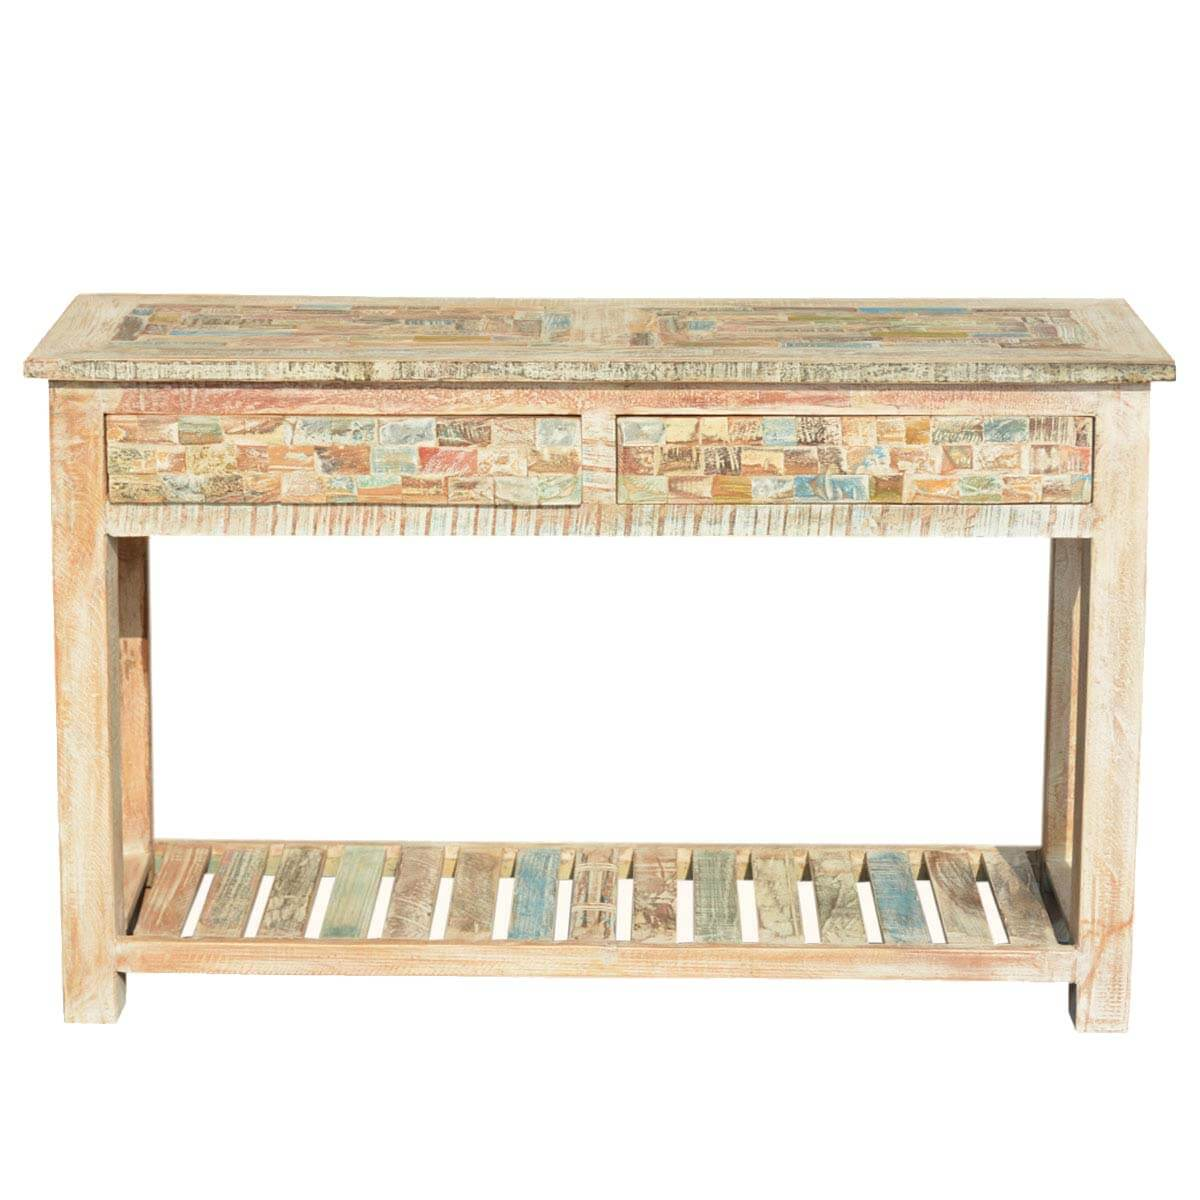 Marvelous photograph of  Paint Box Reclaimed Wood Pastel 47.5 Console Hall Table w Drawers with #A47D27 color and 1200x1200 pixels